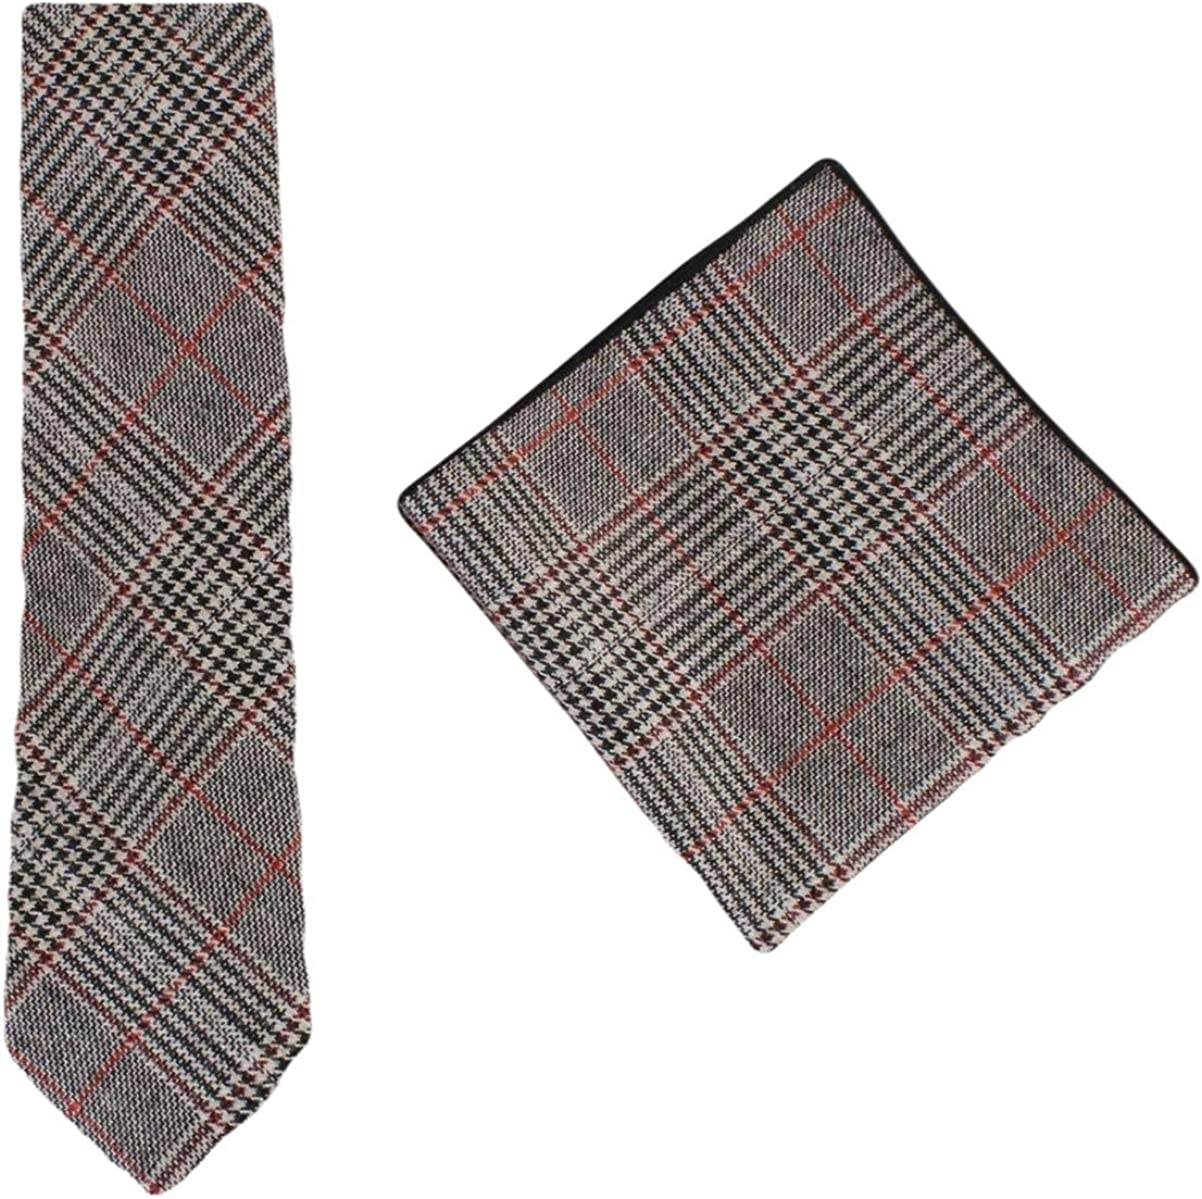 Knightsbridge Neckwear Mens Prince of Wales Check Tie and Pocket Square Set - Black/Red